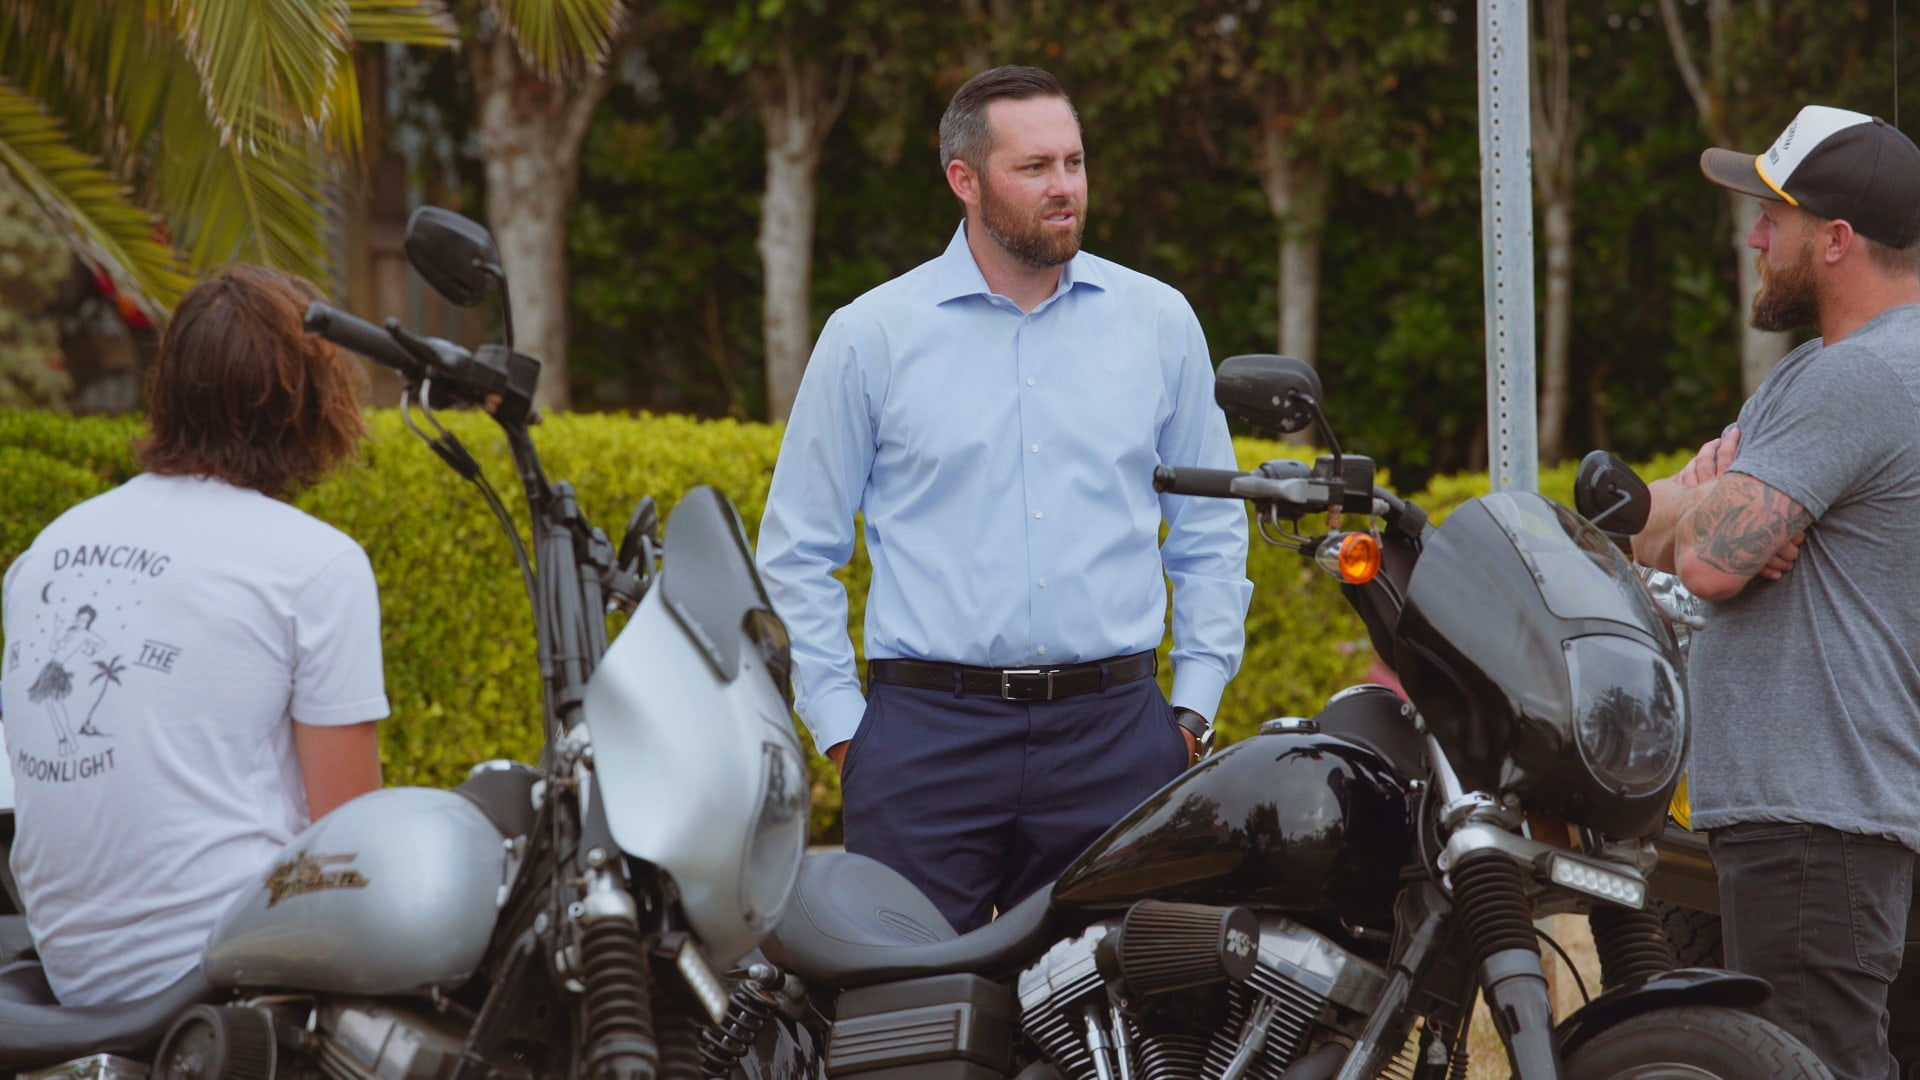 Seek the assistance of a San Diego motorcycle accident lawyer today if you or a loved one has suffered injuries as the result of a motorbike crash